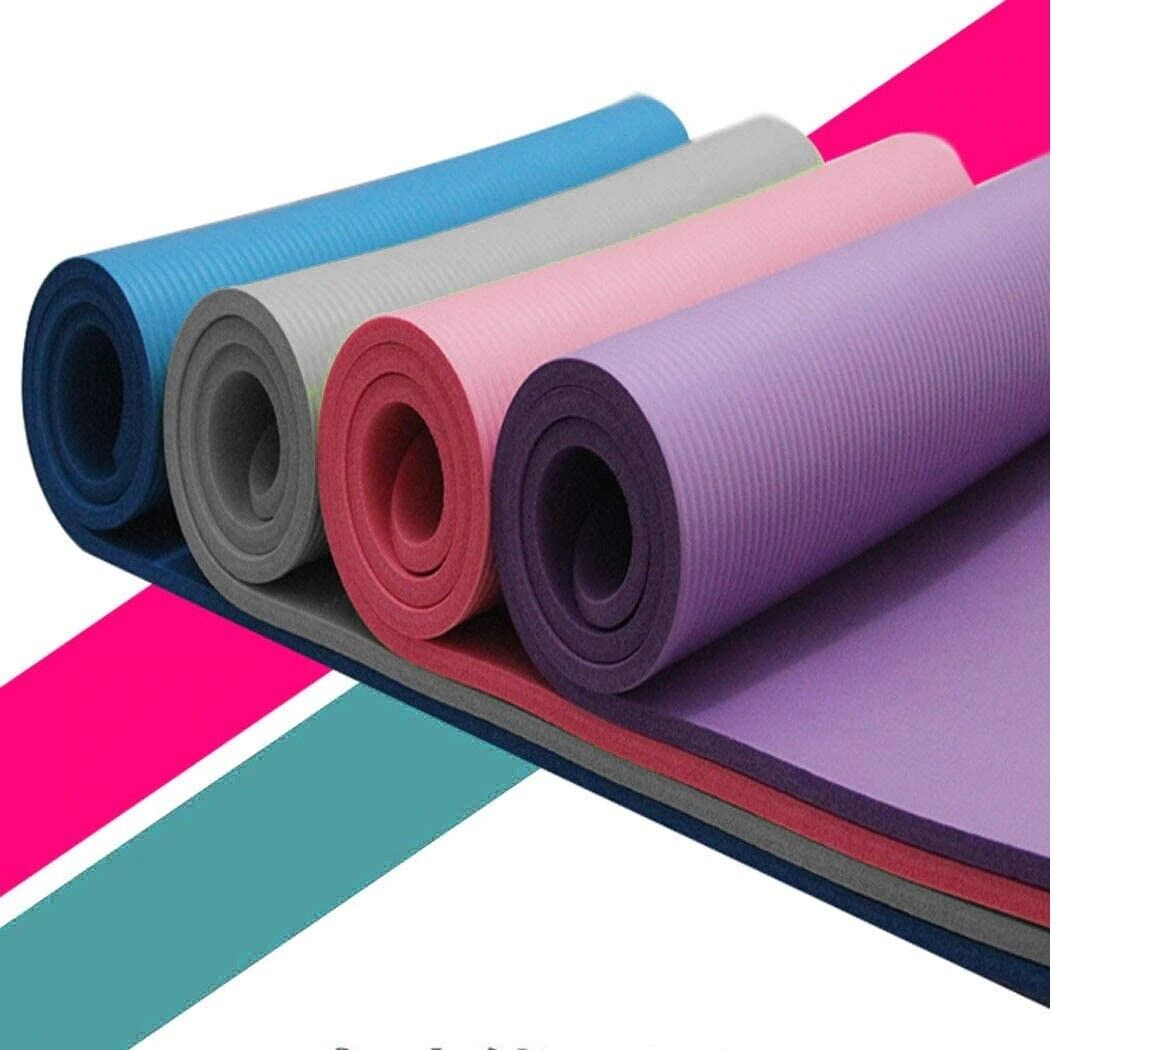 New Professional Yoga Mat Exercise Fitness Gym Workout Thick